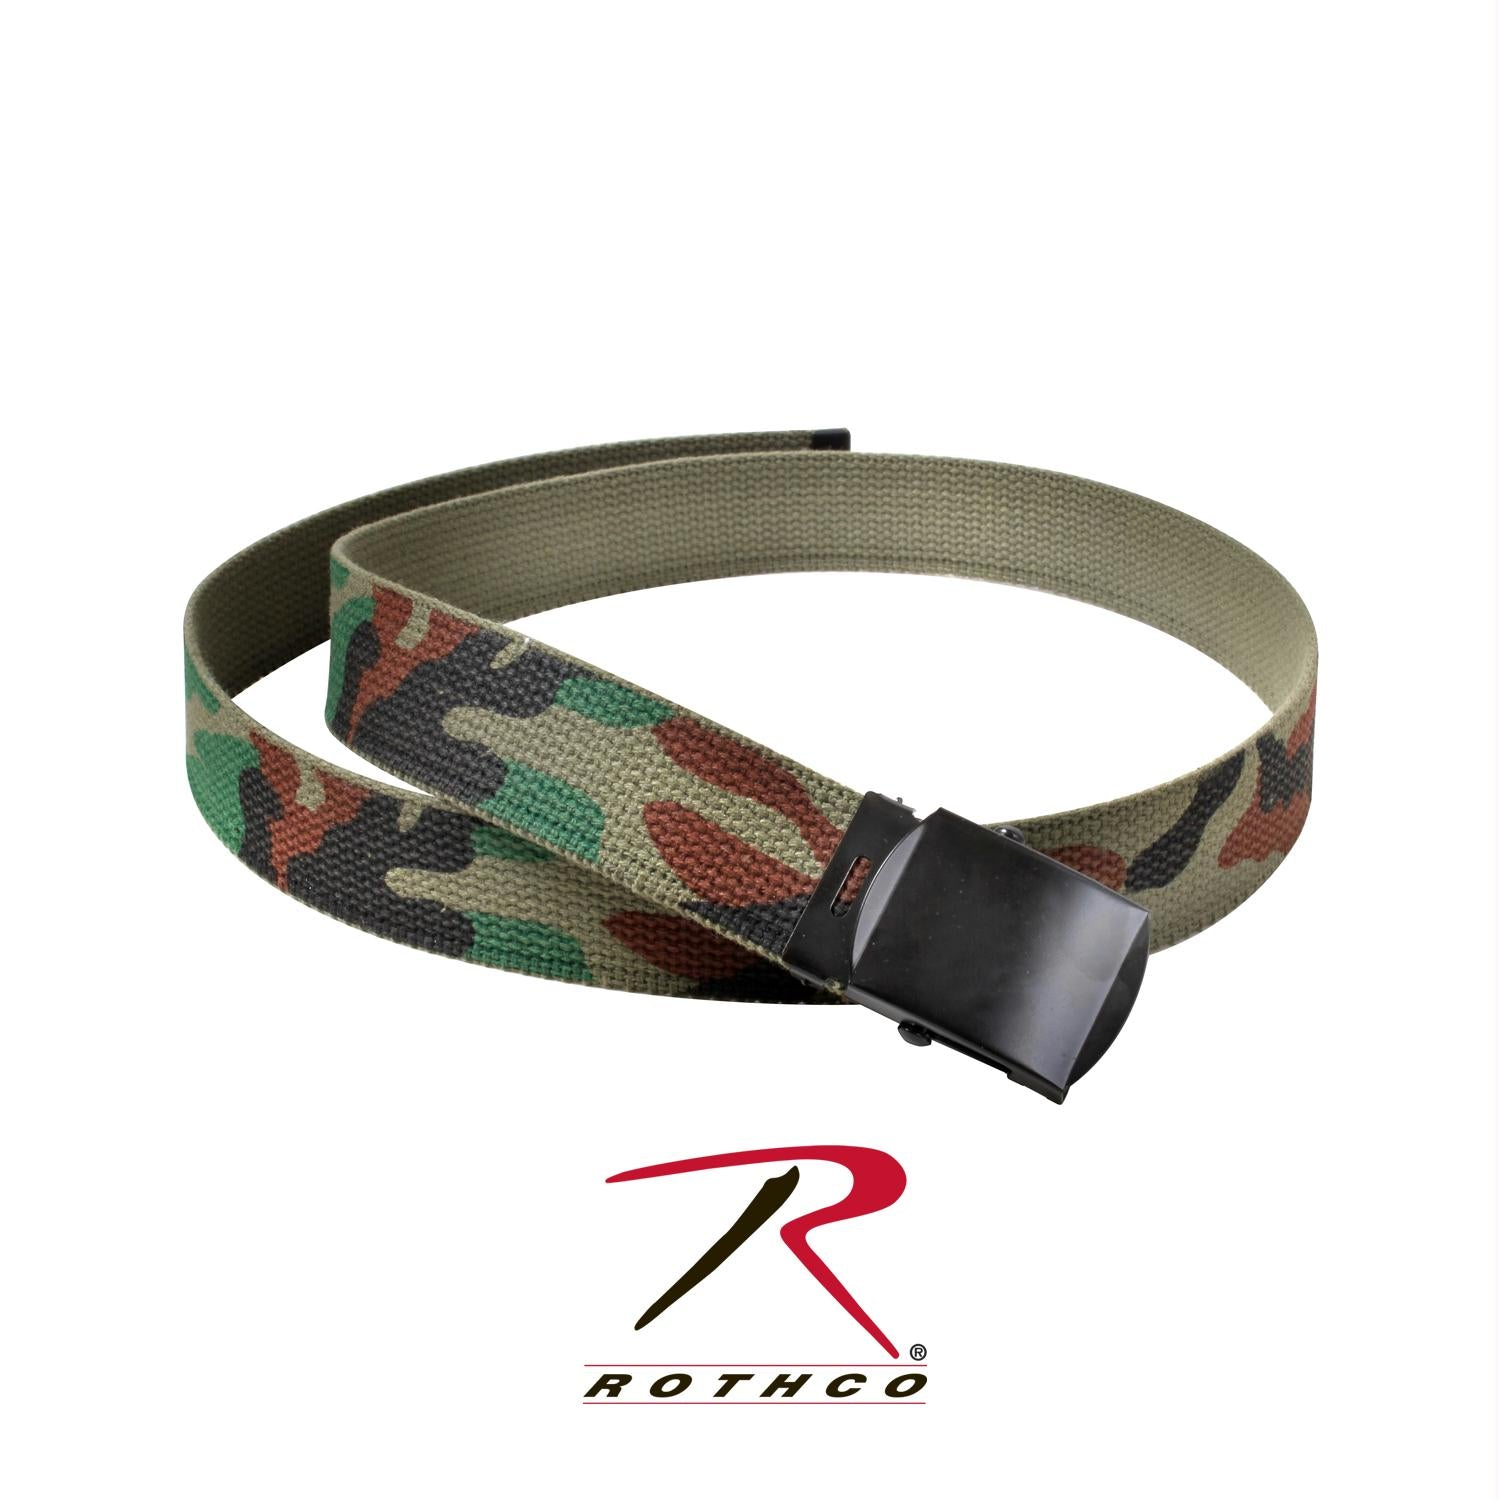 Rothco Camo Reversible Web Belt - Woodland Camo / Olive Drab / 64 Inches